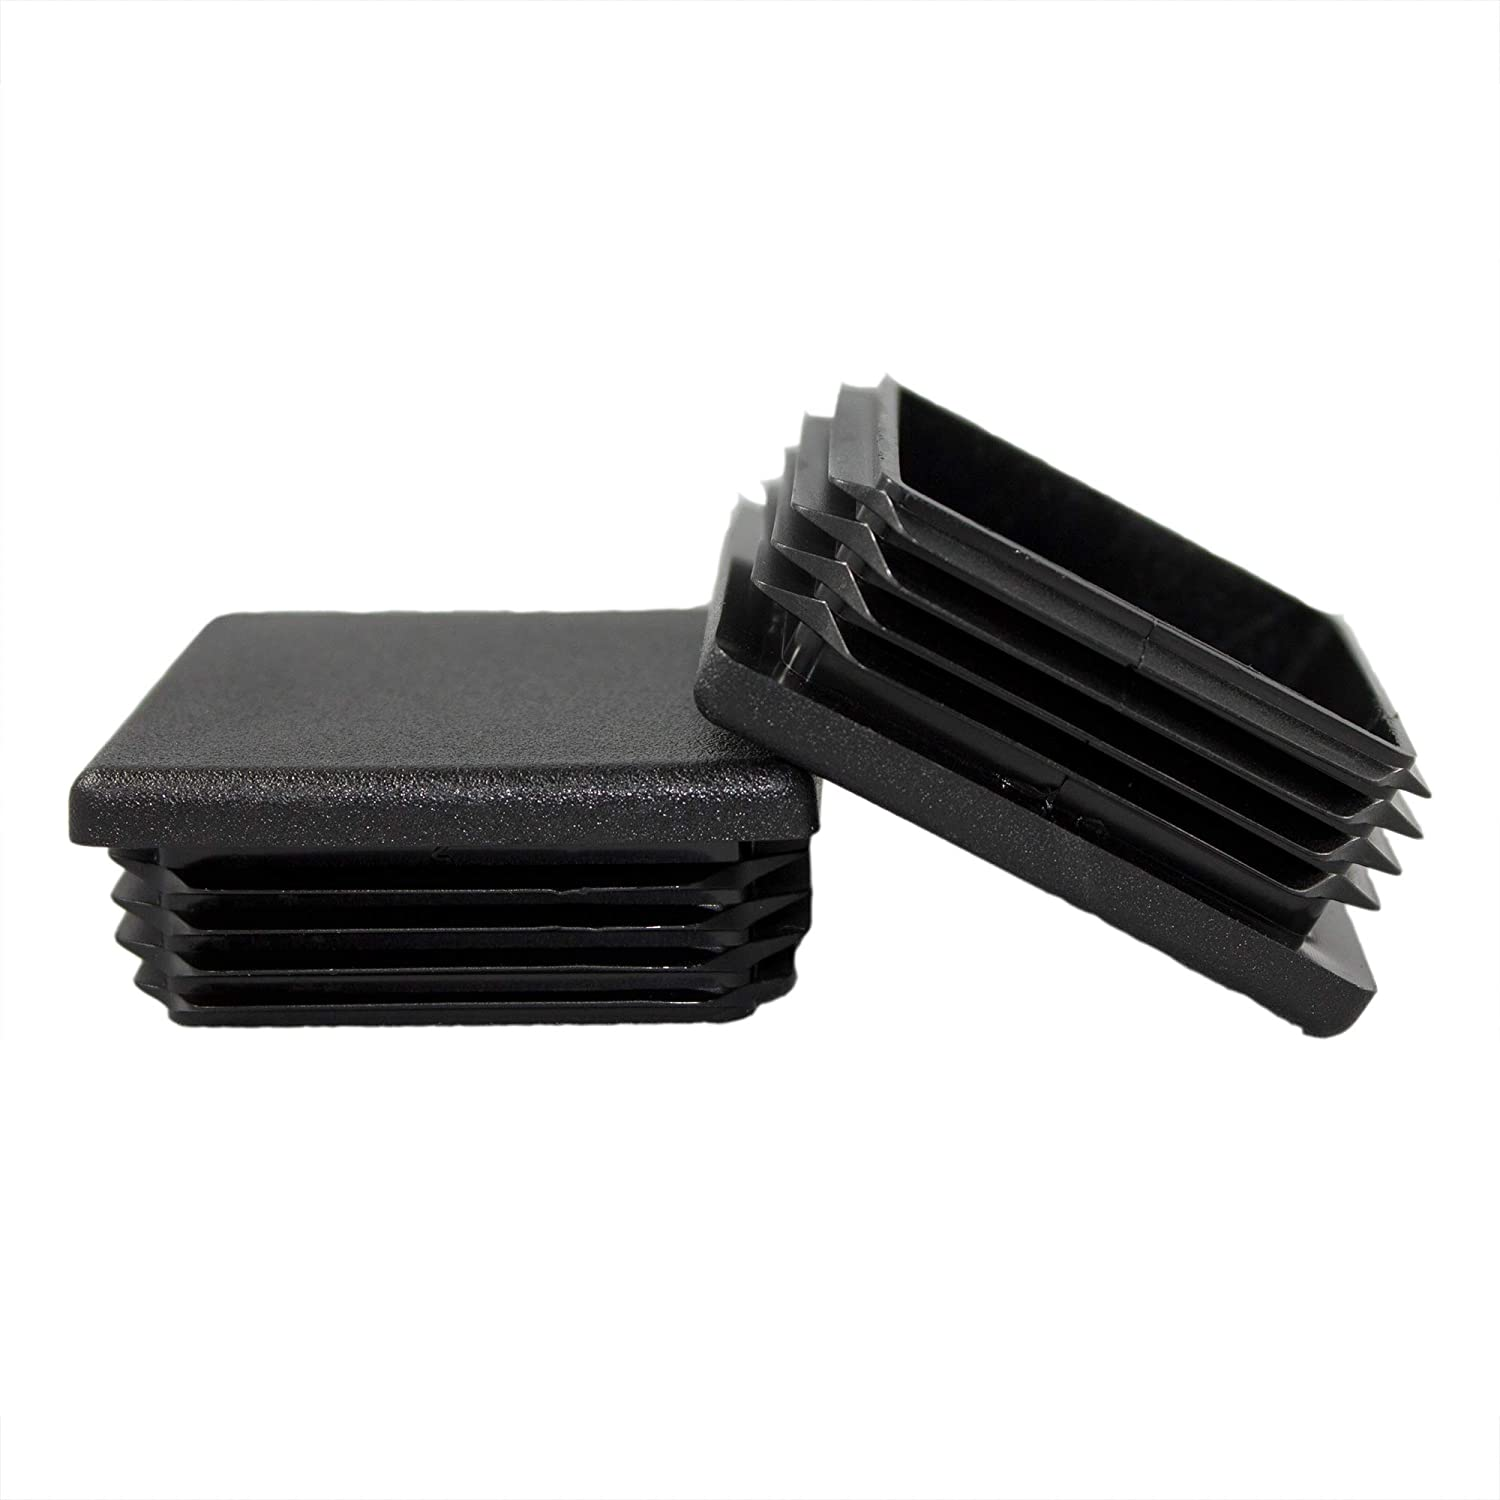 4 Pack - 2' Square Tubing Black Plastic Plug, 2 Inch End Cap 2'x2' 2x2 Fence Post Pipe Cover Tube Chair Glide Insert Finishing Plug 2 Inch End Cap 2x2 2x2 Fence Post Pipe Cover Tube Chair Glide Insert Finishing Plug PVB413